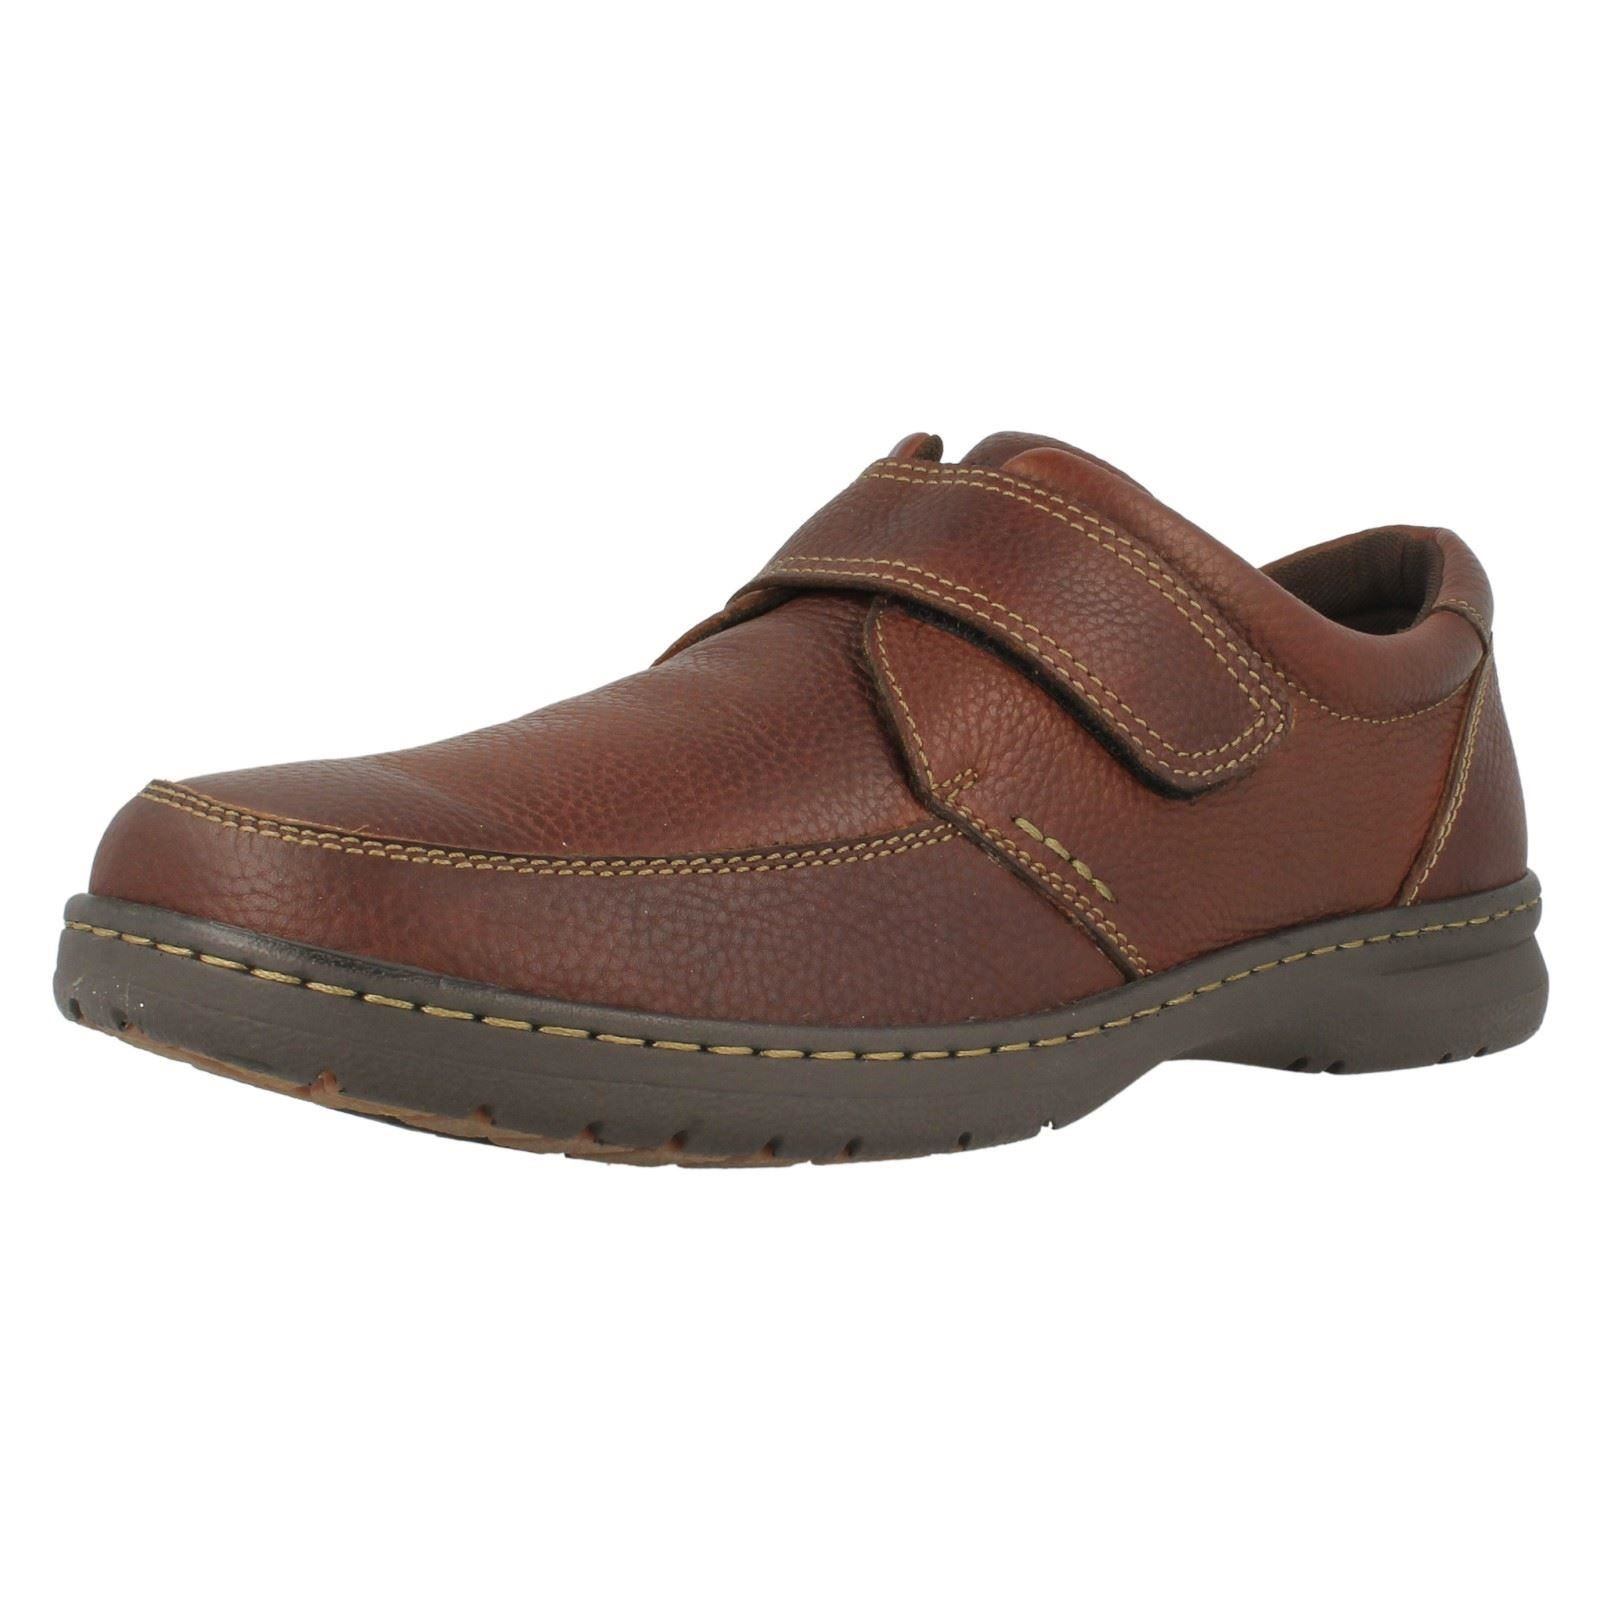 Amazon Uk Hush Puppies Shoes